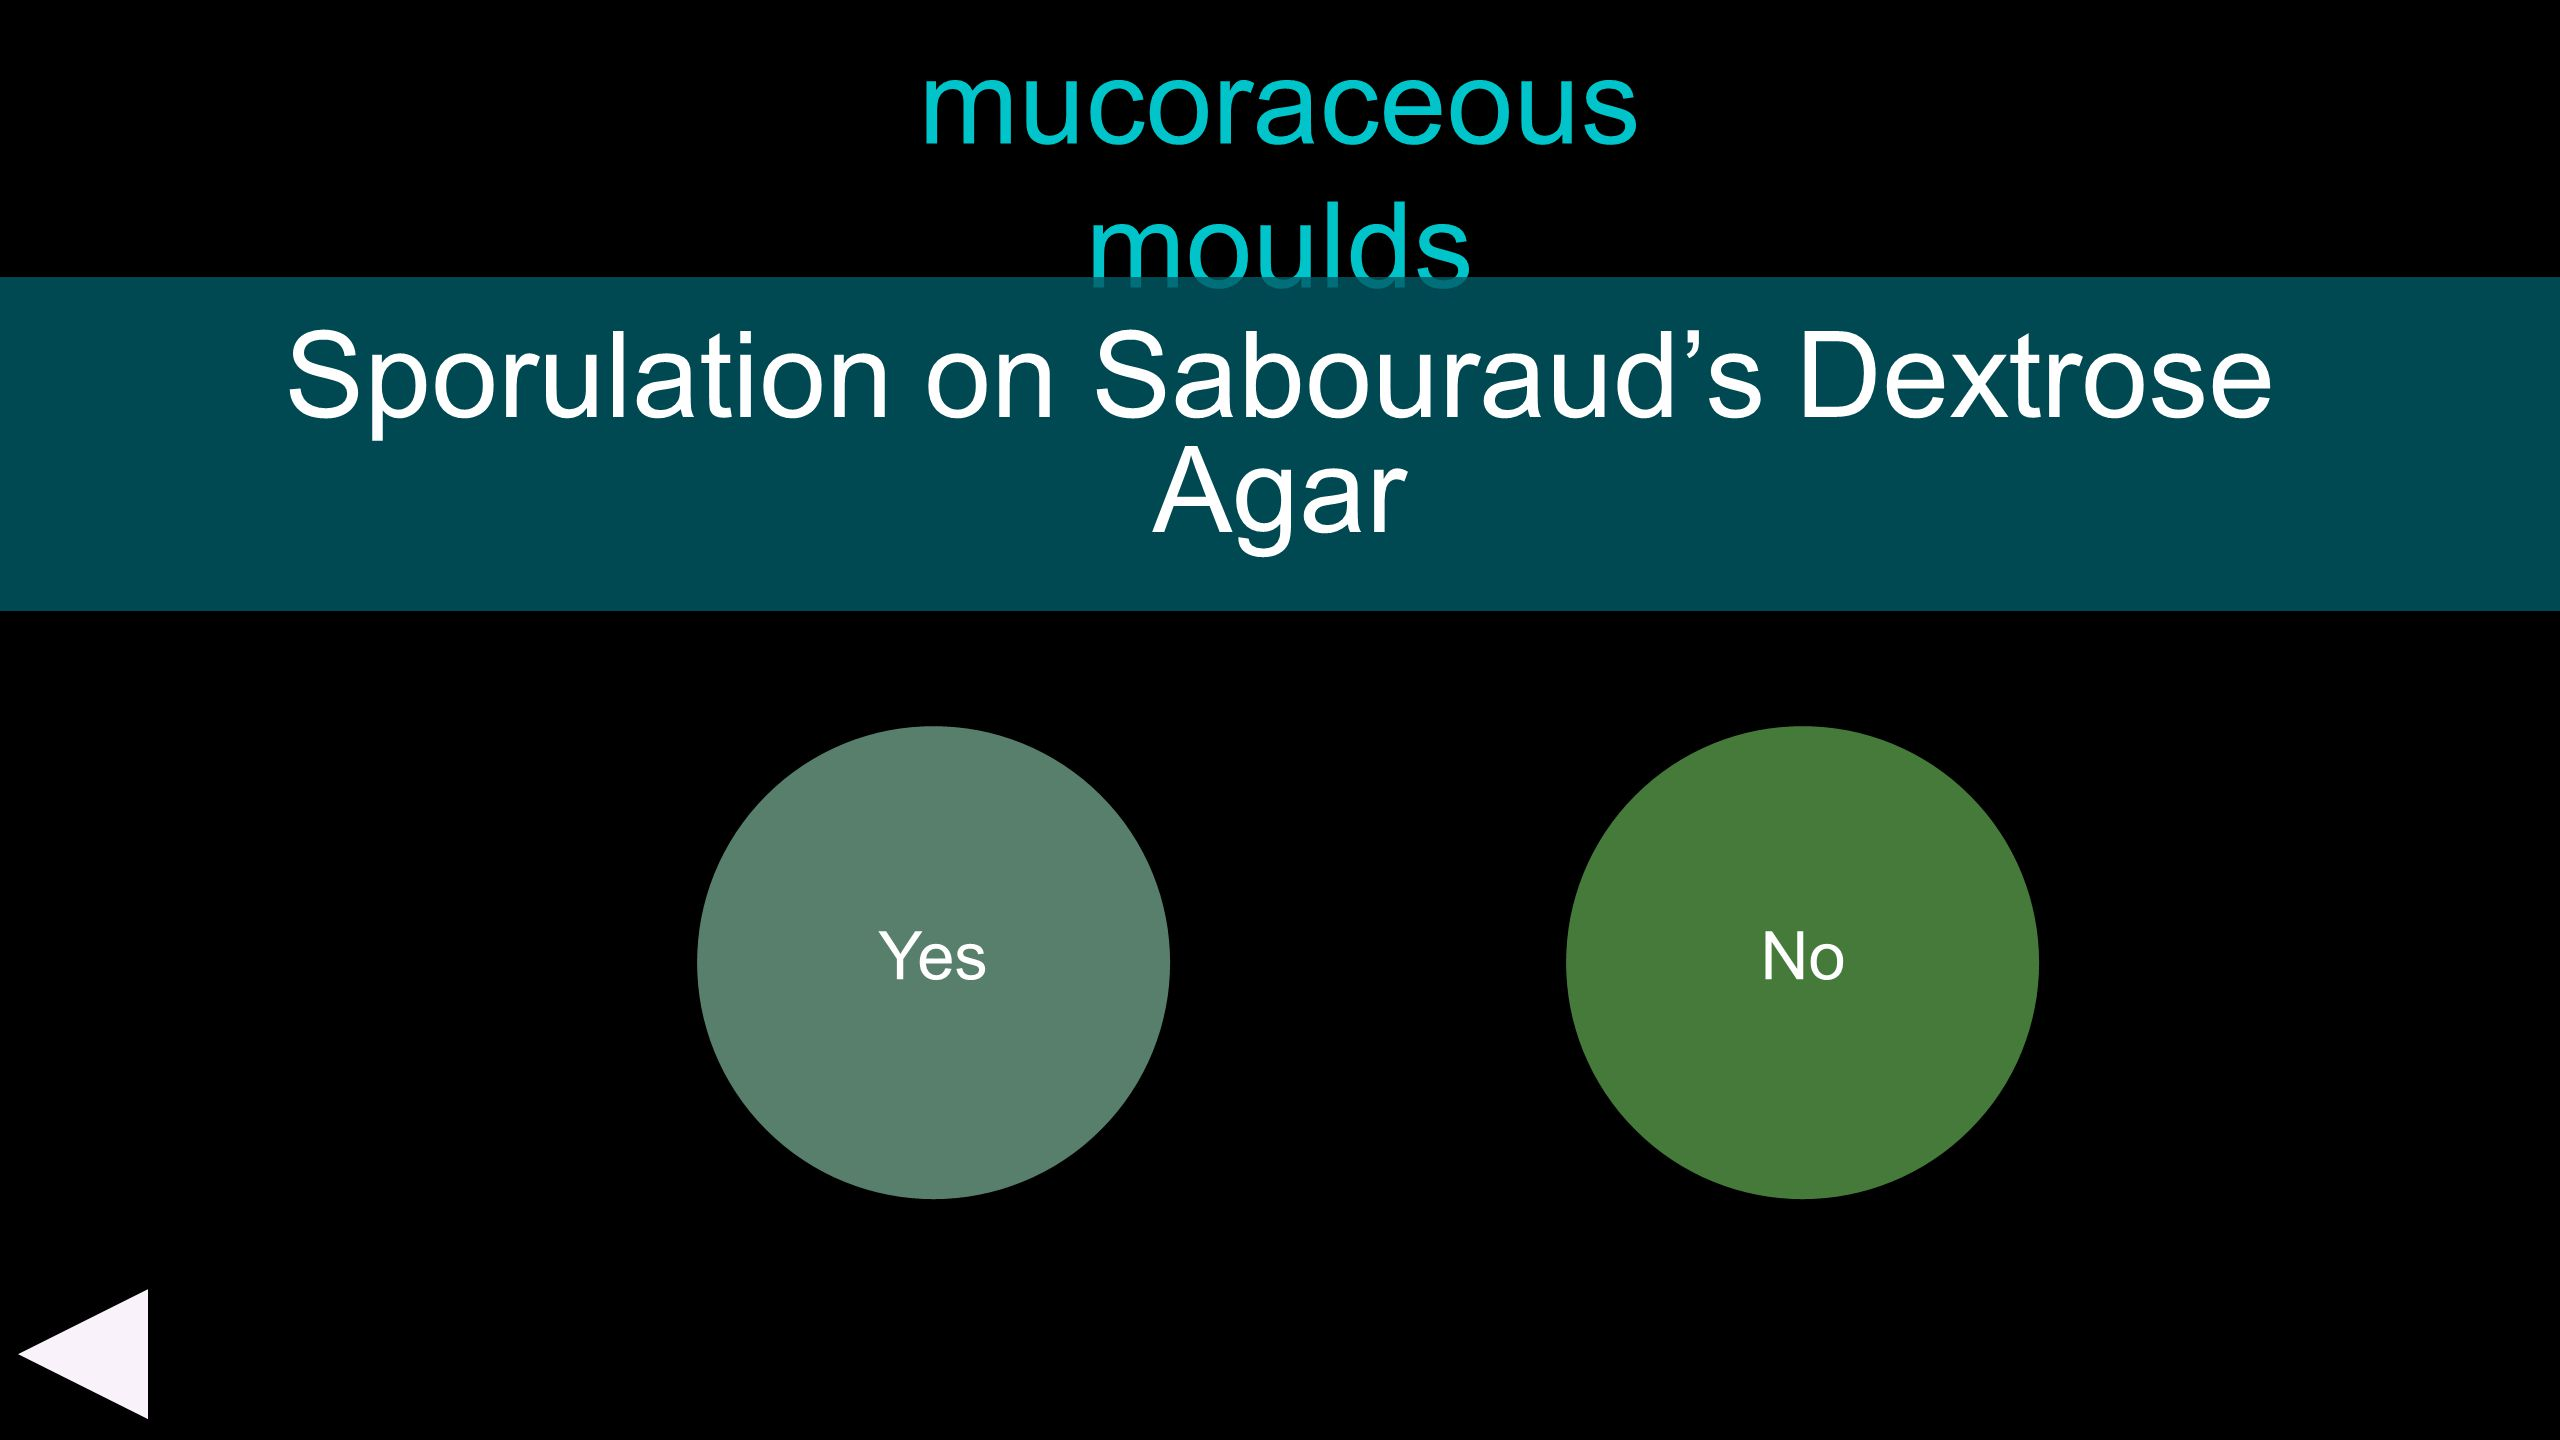 Sporulation on Sabouraud's Dextrose Agar